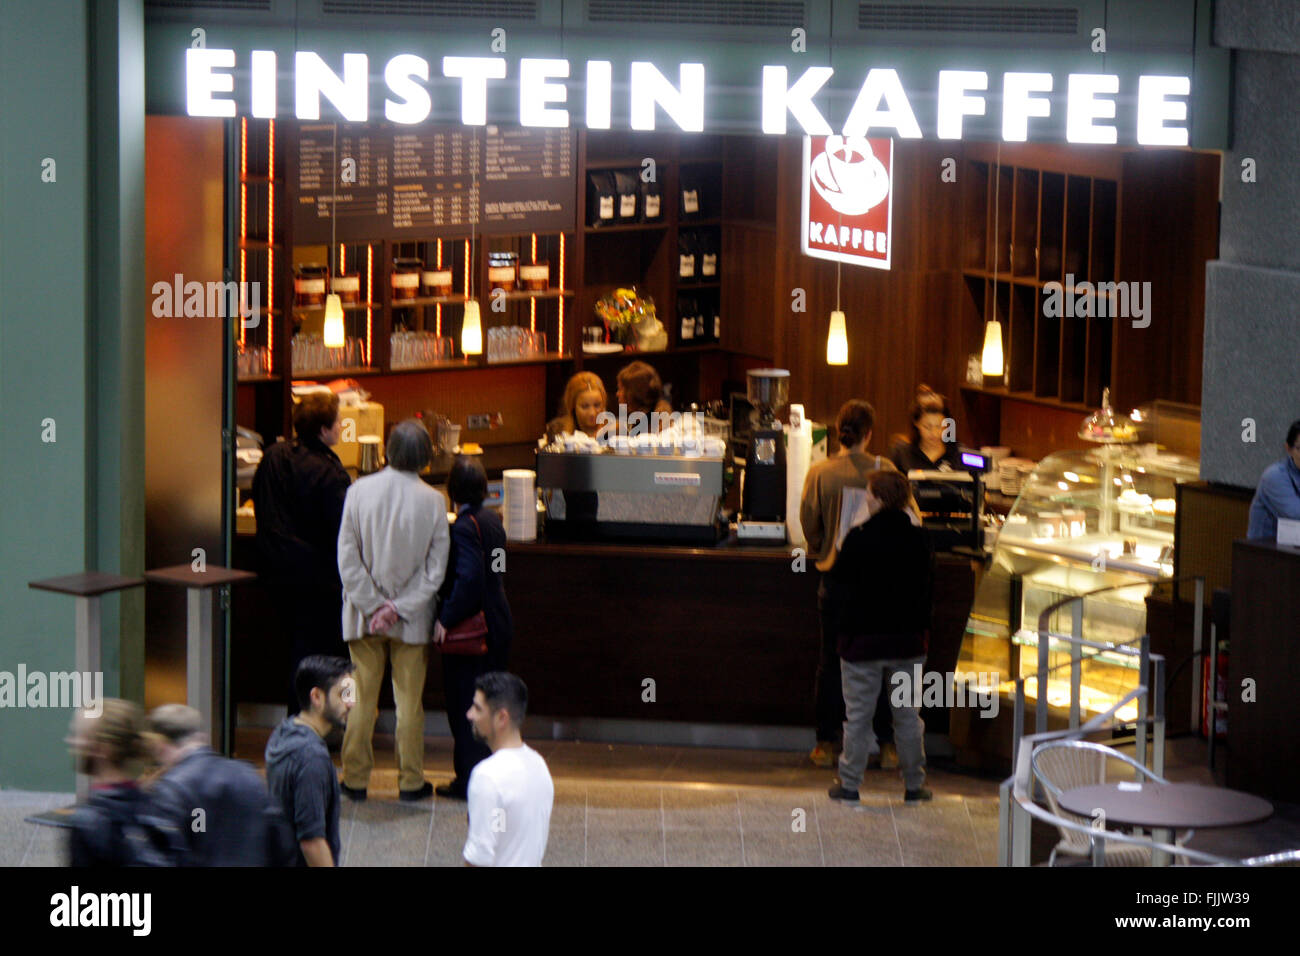 Kaffee Einstein Kaffee Stockfotos And Kaffee Bilder Alamy